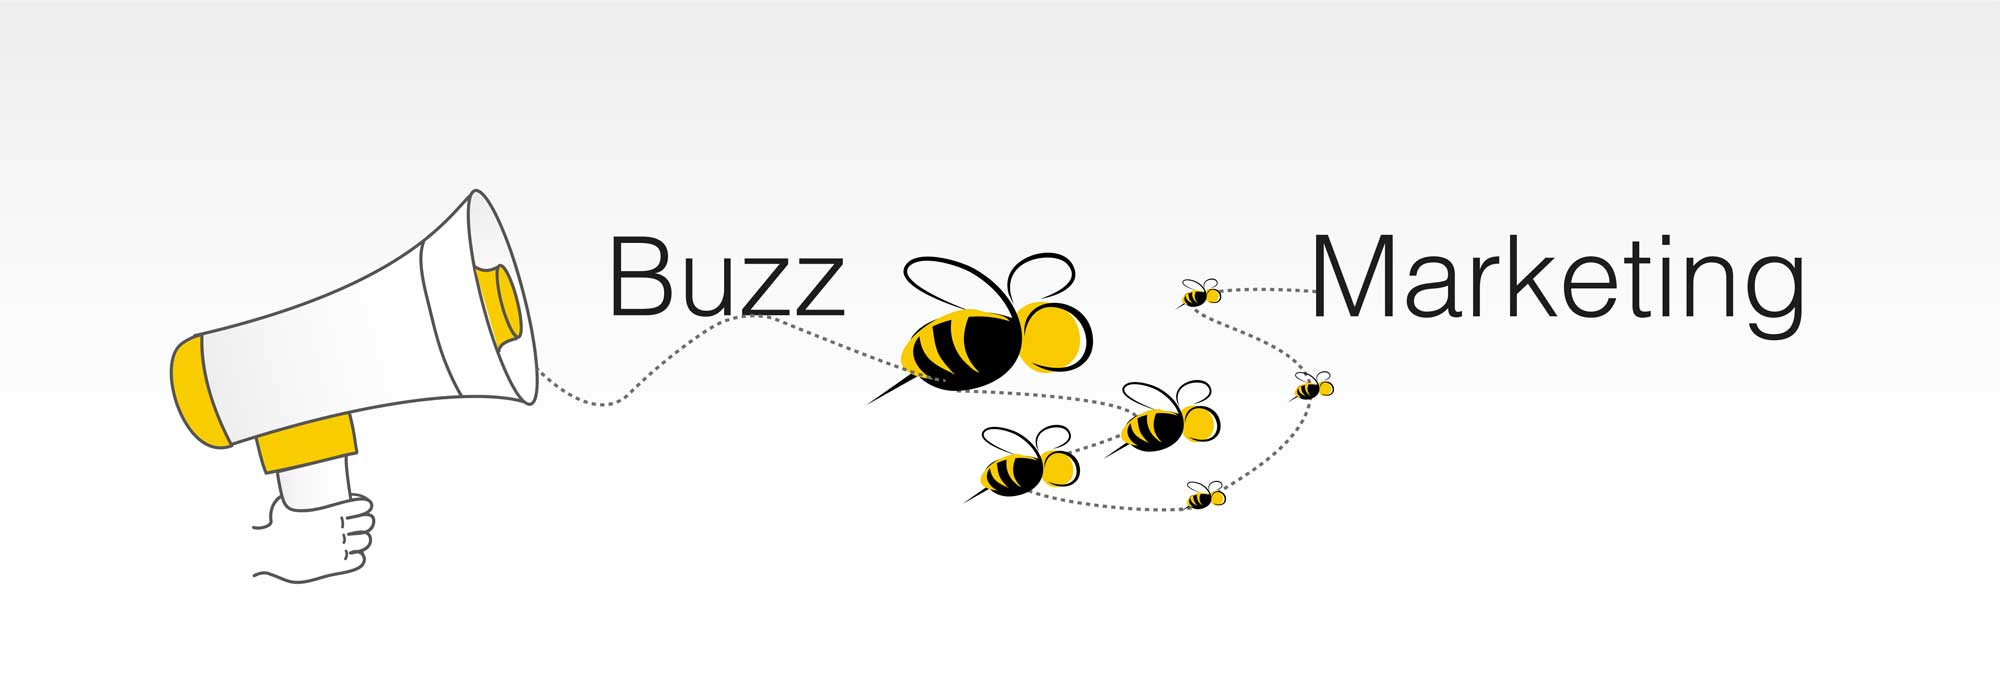 Buzz Marketing: il marketing che ronza